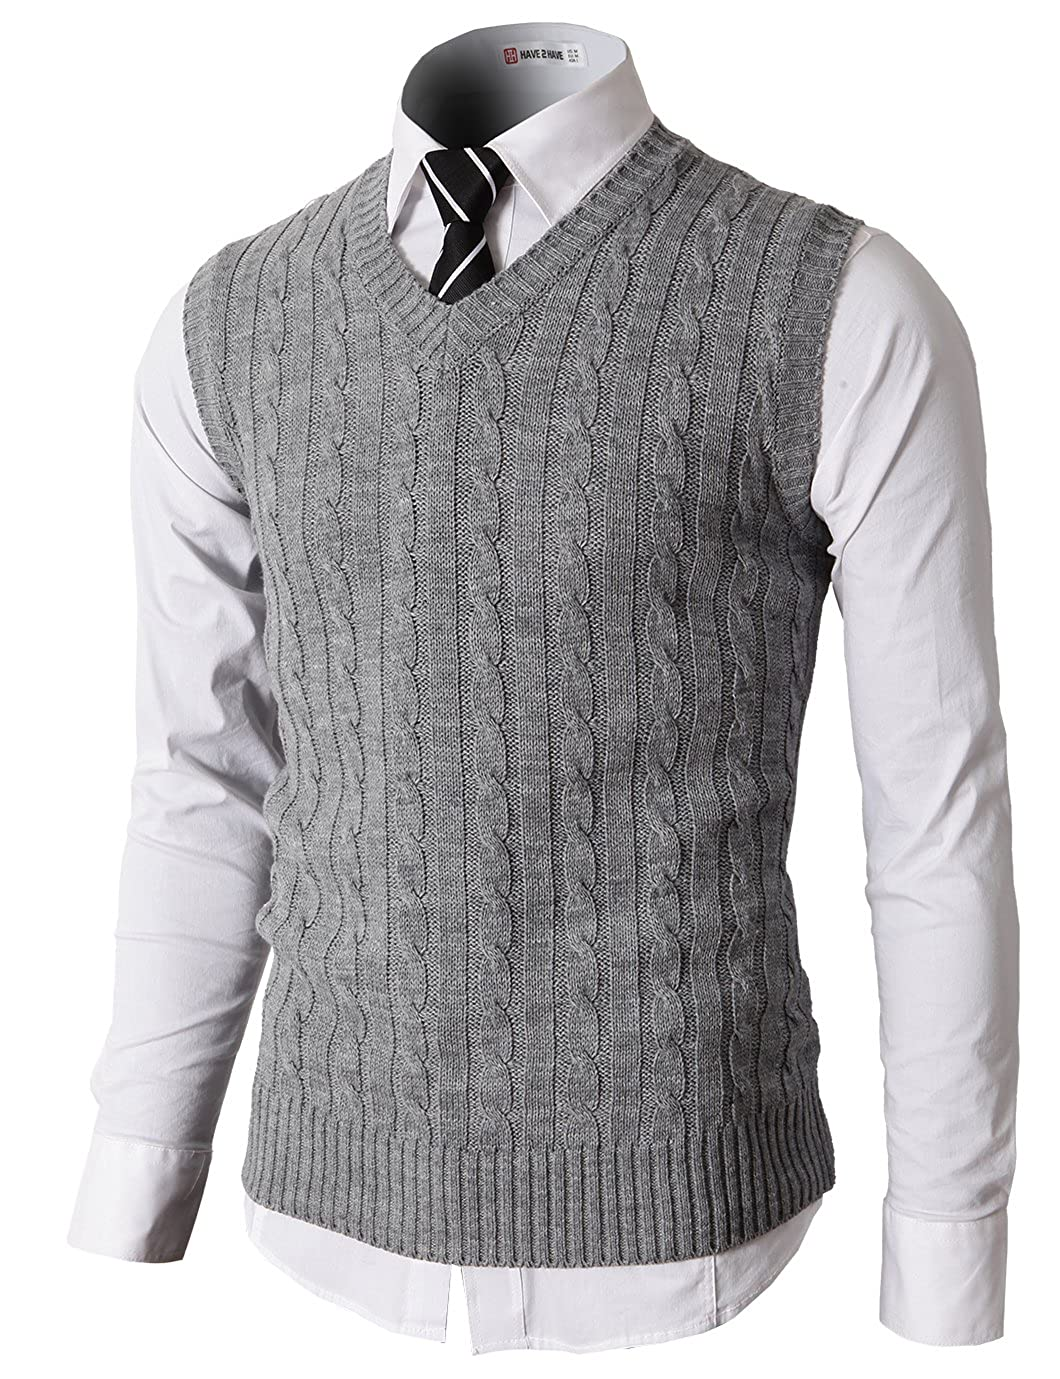 1920s Mens Sweaters, Pullovers, Cardigans H2H Mens Casual Knitted Slim Fit V-neck Vest With Twisted Patterned $26.80 AT vintagedancer.com